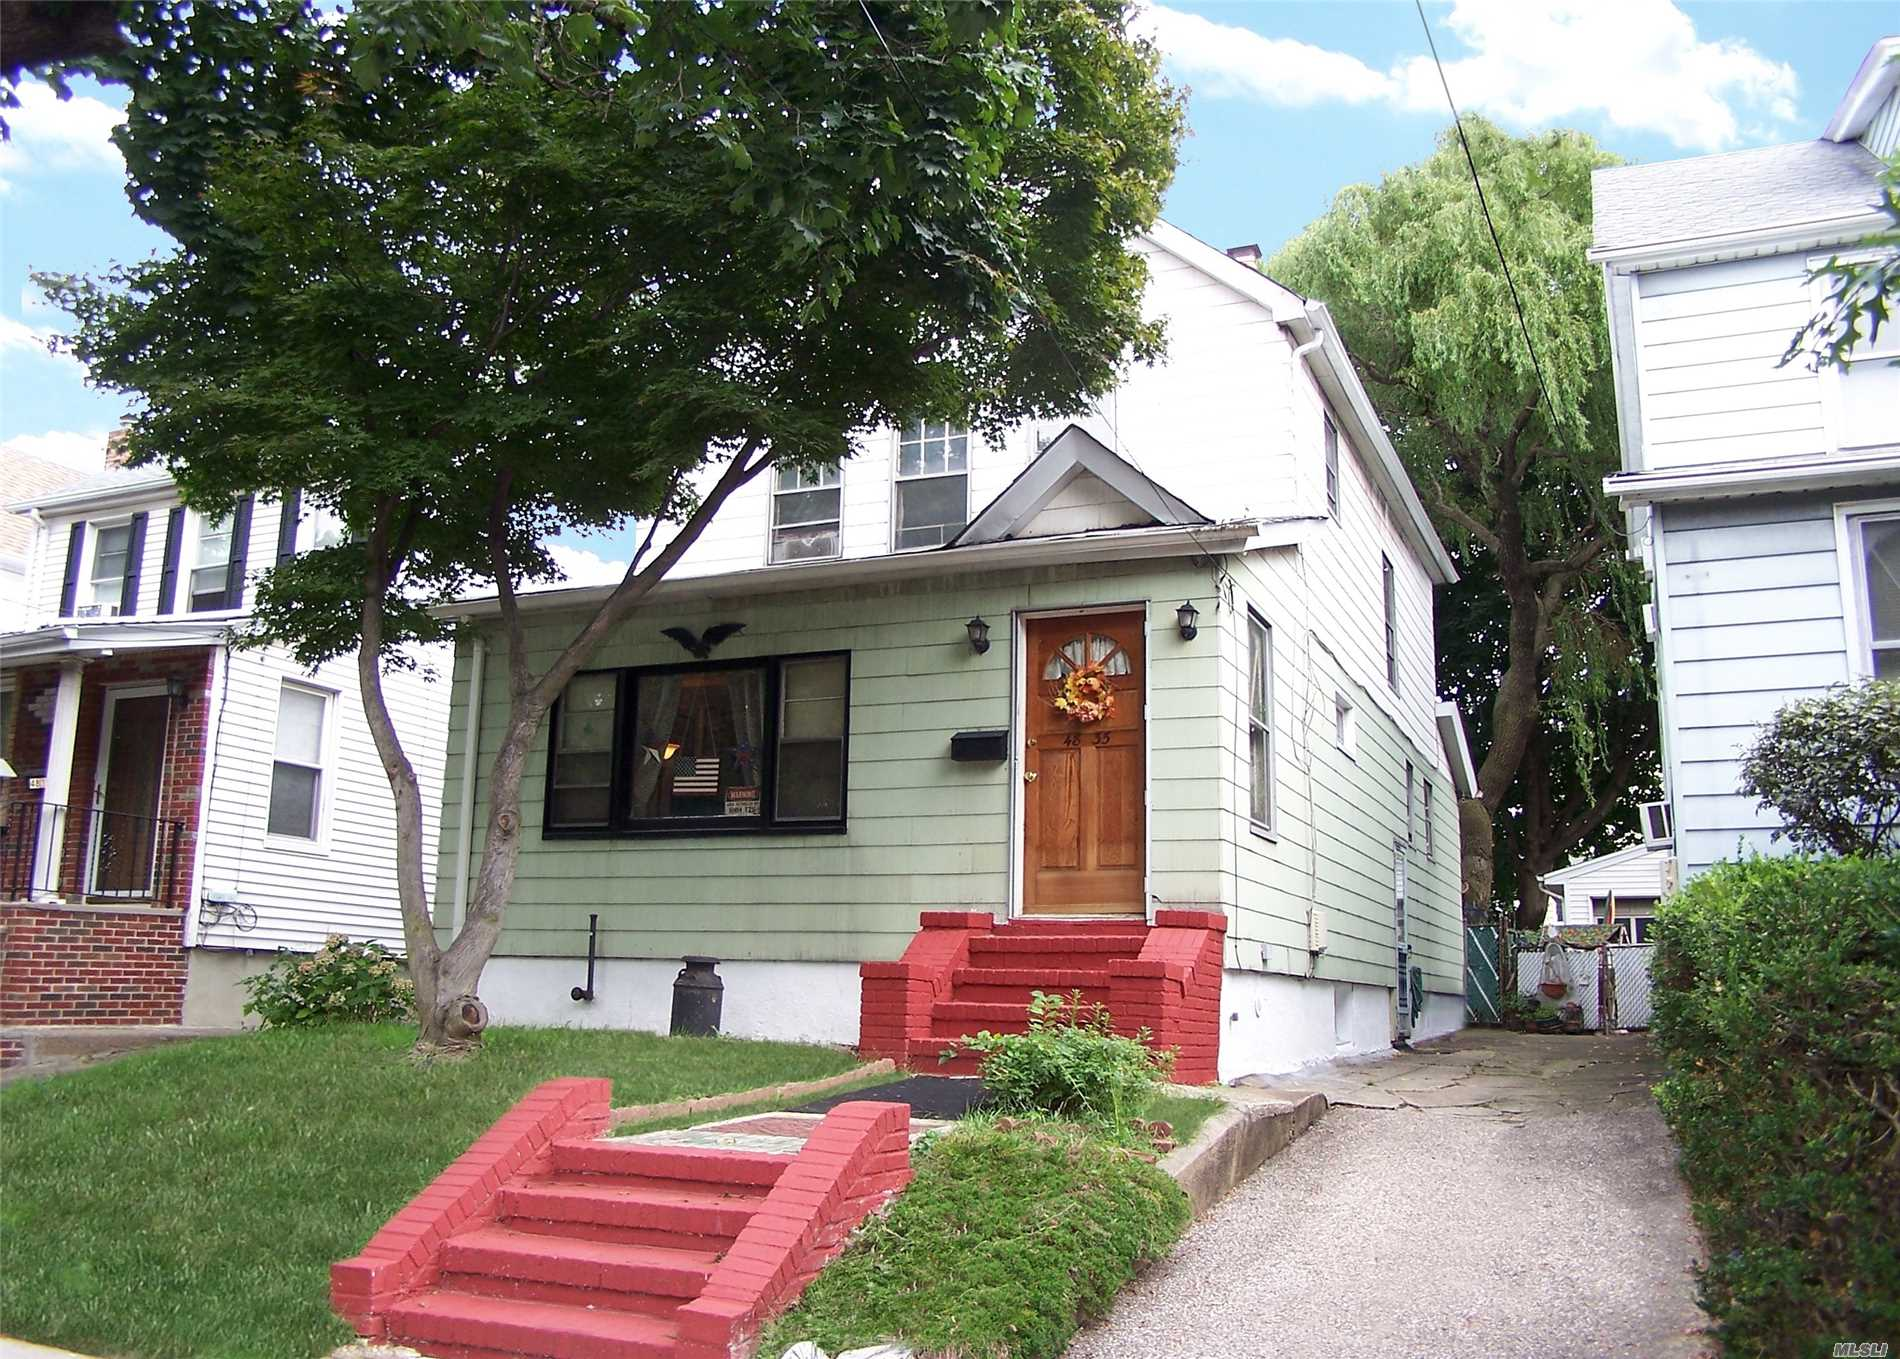 Wonderful Opportunity To Own This Lovely Detached Home In Bayside. Property Class Is B3 Duplex. Great Floor Plan Offers Spacious Living Room And Dining Room. 3 Large Bedrooms On Second Level - Plus Loft On Third Level. Private Driveway With 2 Car Garage. Fenced Yard & Amble Parking On Block. Near All!